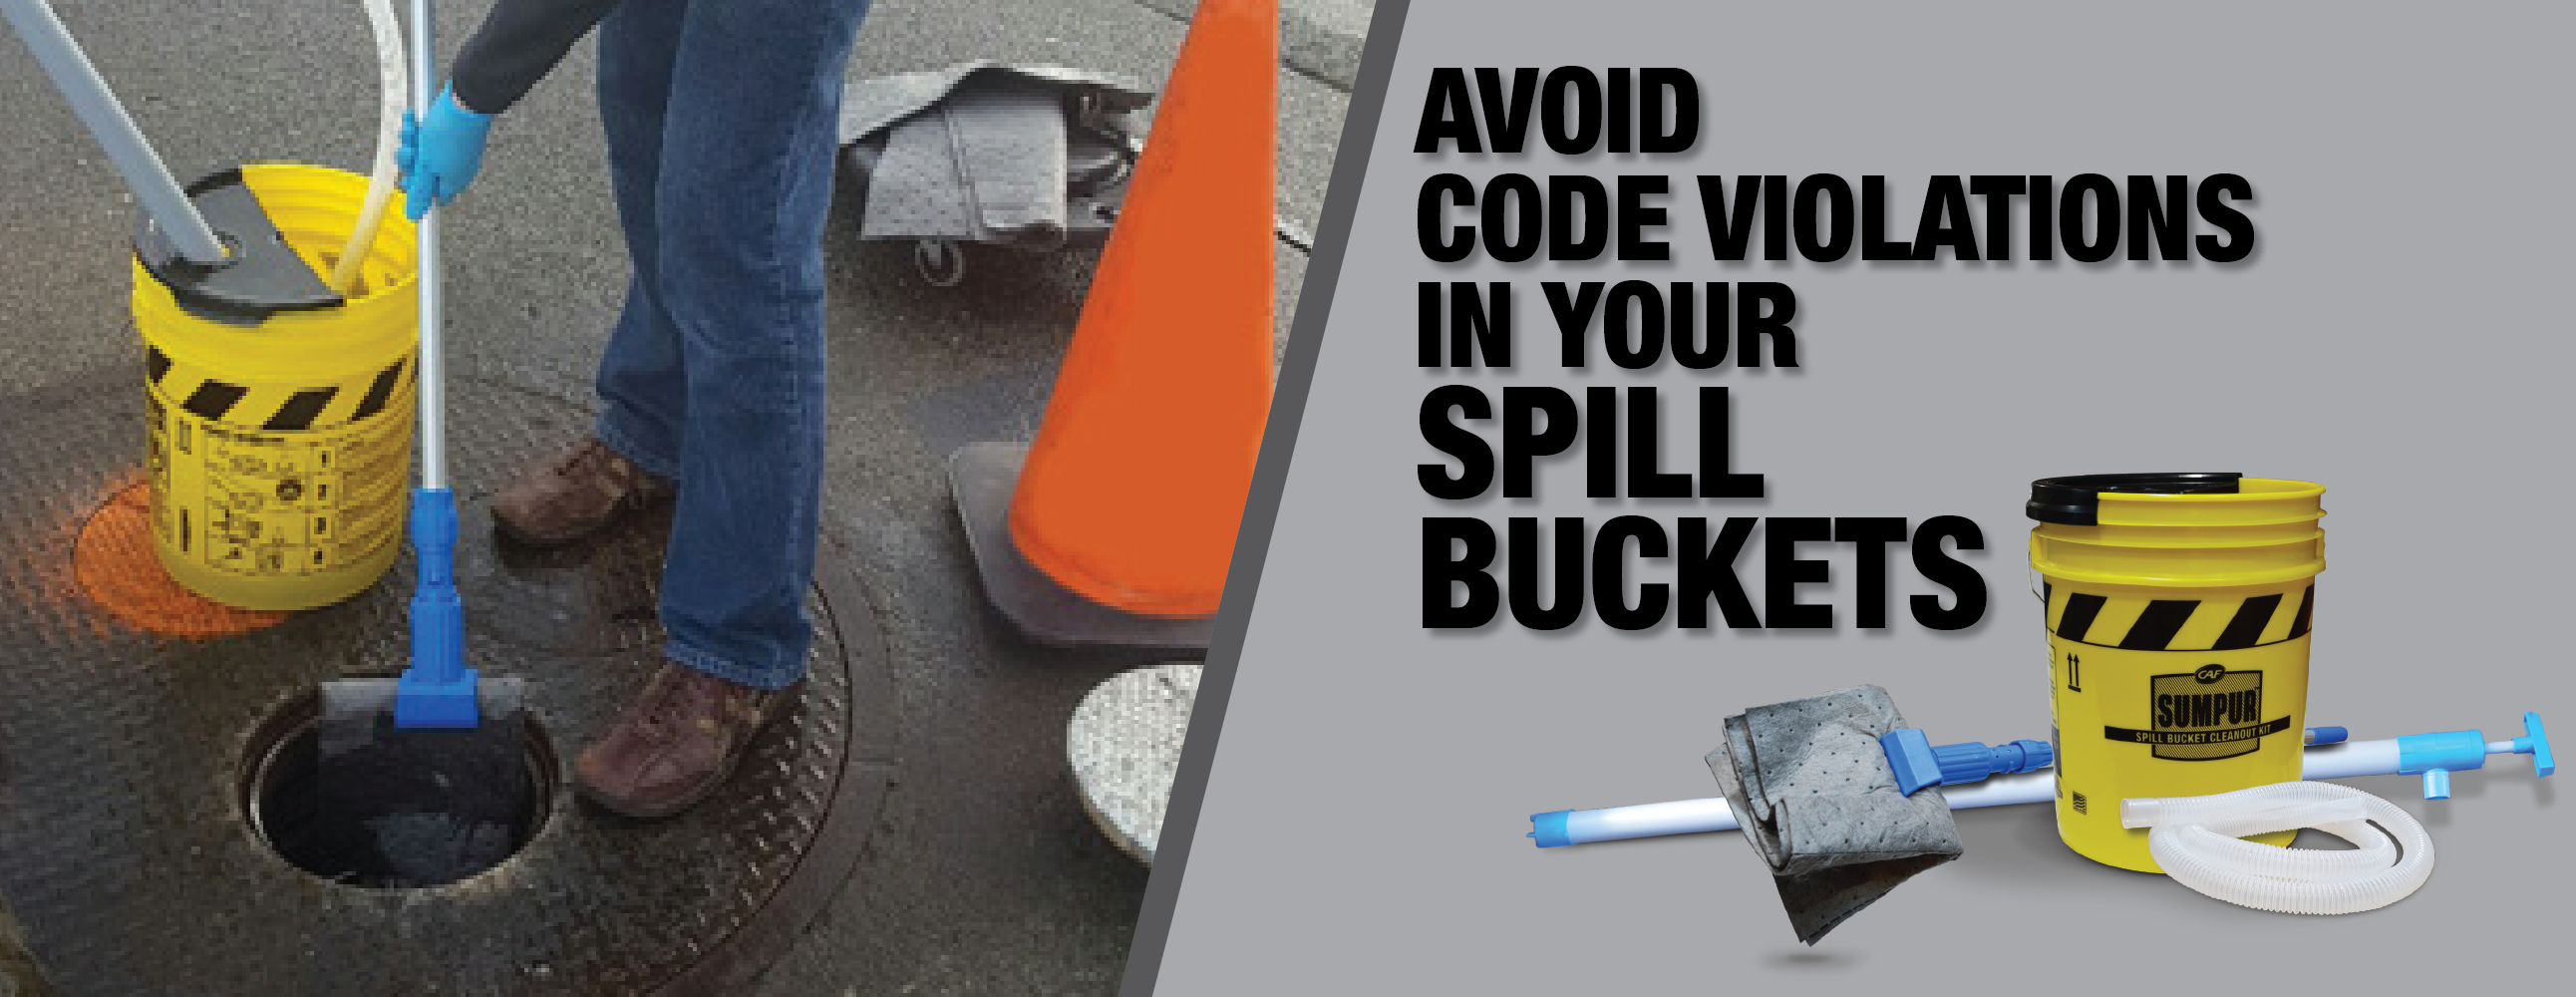 Spill Buckets: Reduce Risk and Apply Best Practices